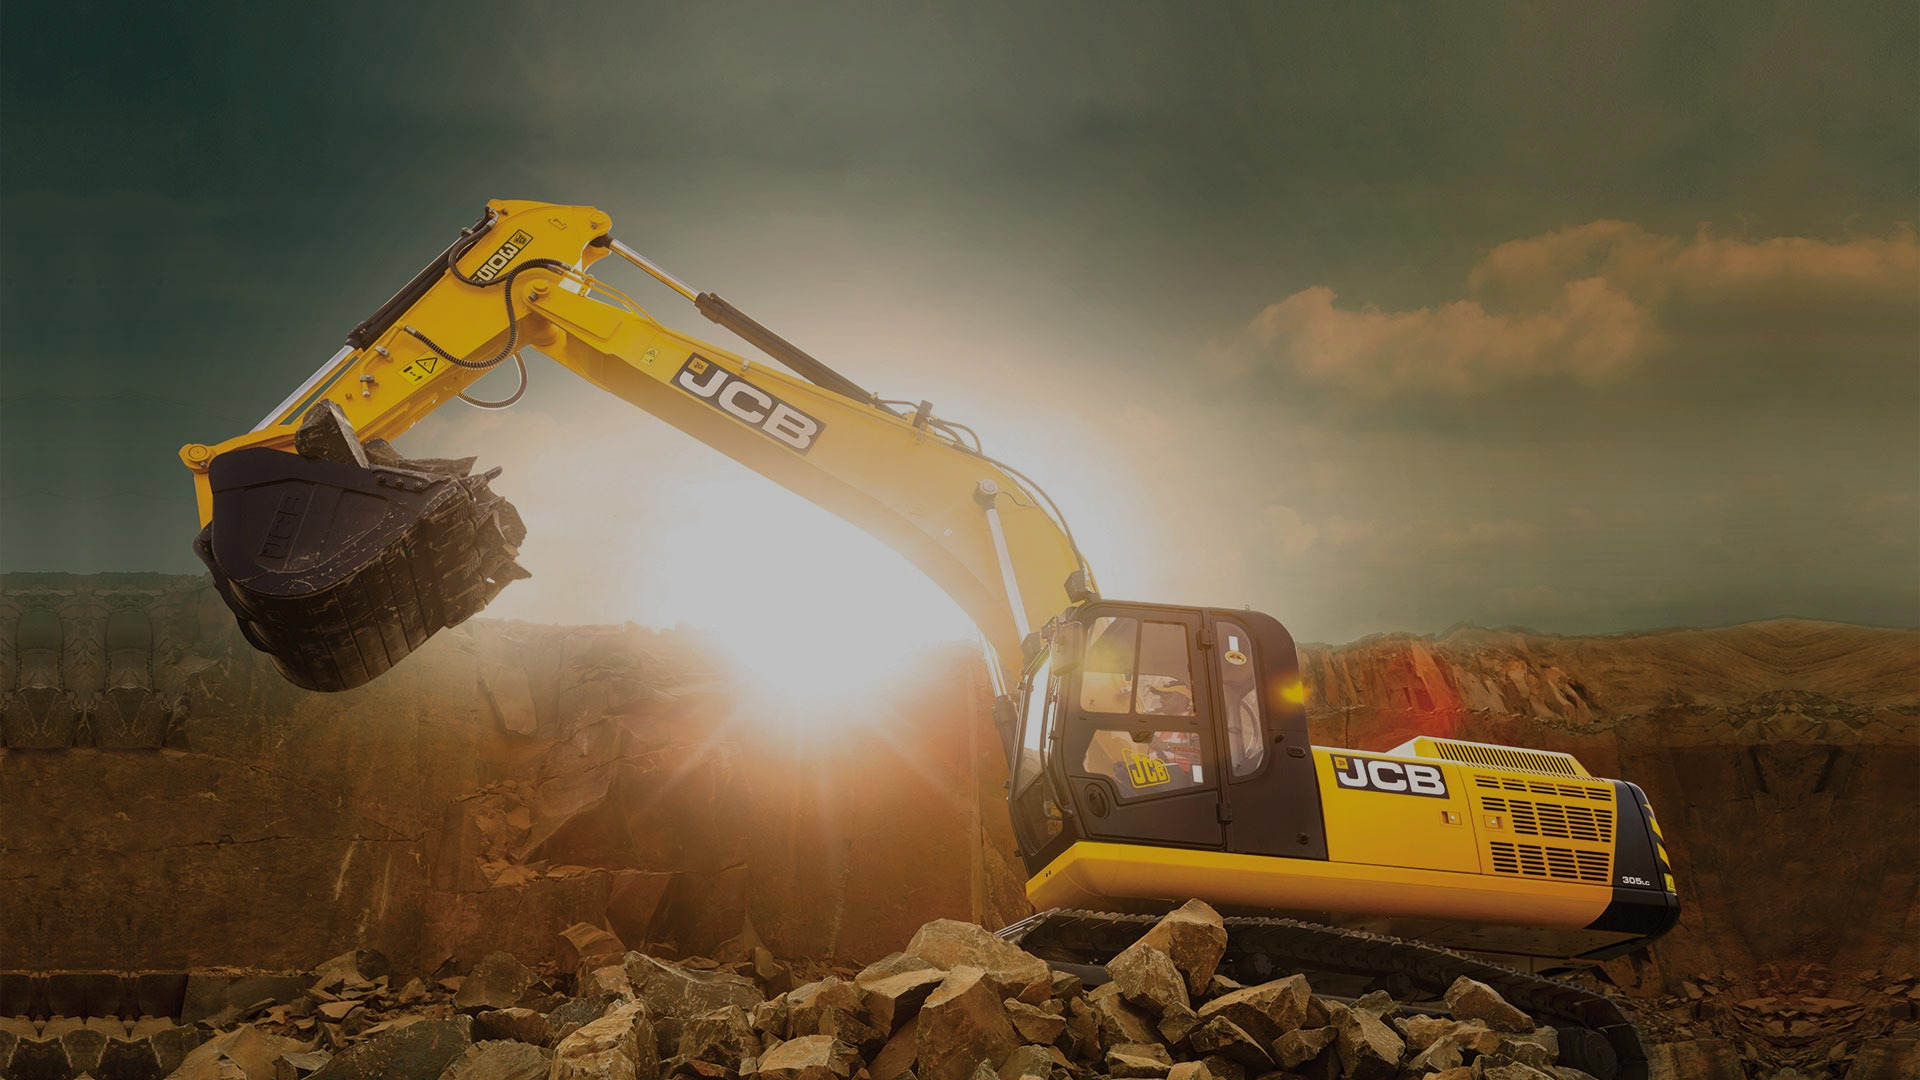 An excavator performing earthworks with the sun peaking out over the horizon